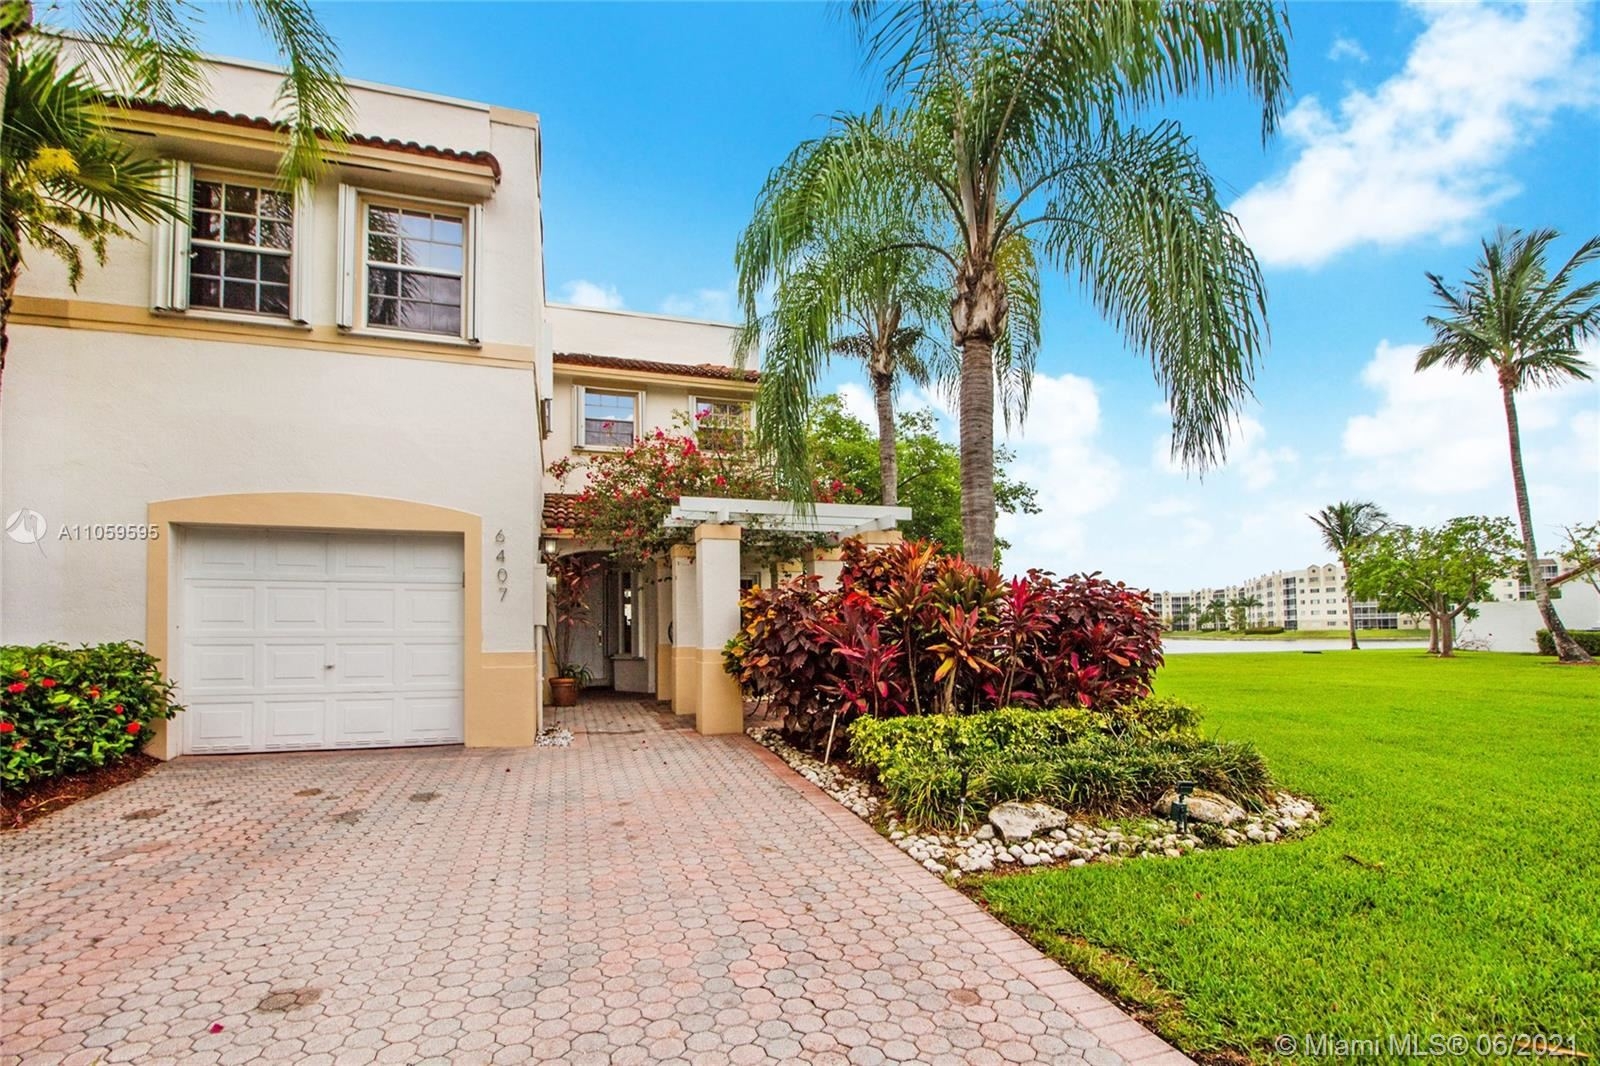 6407 NW 109th Ave, Doral, FL 33178 - #: A11059595